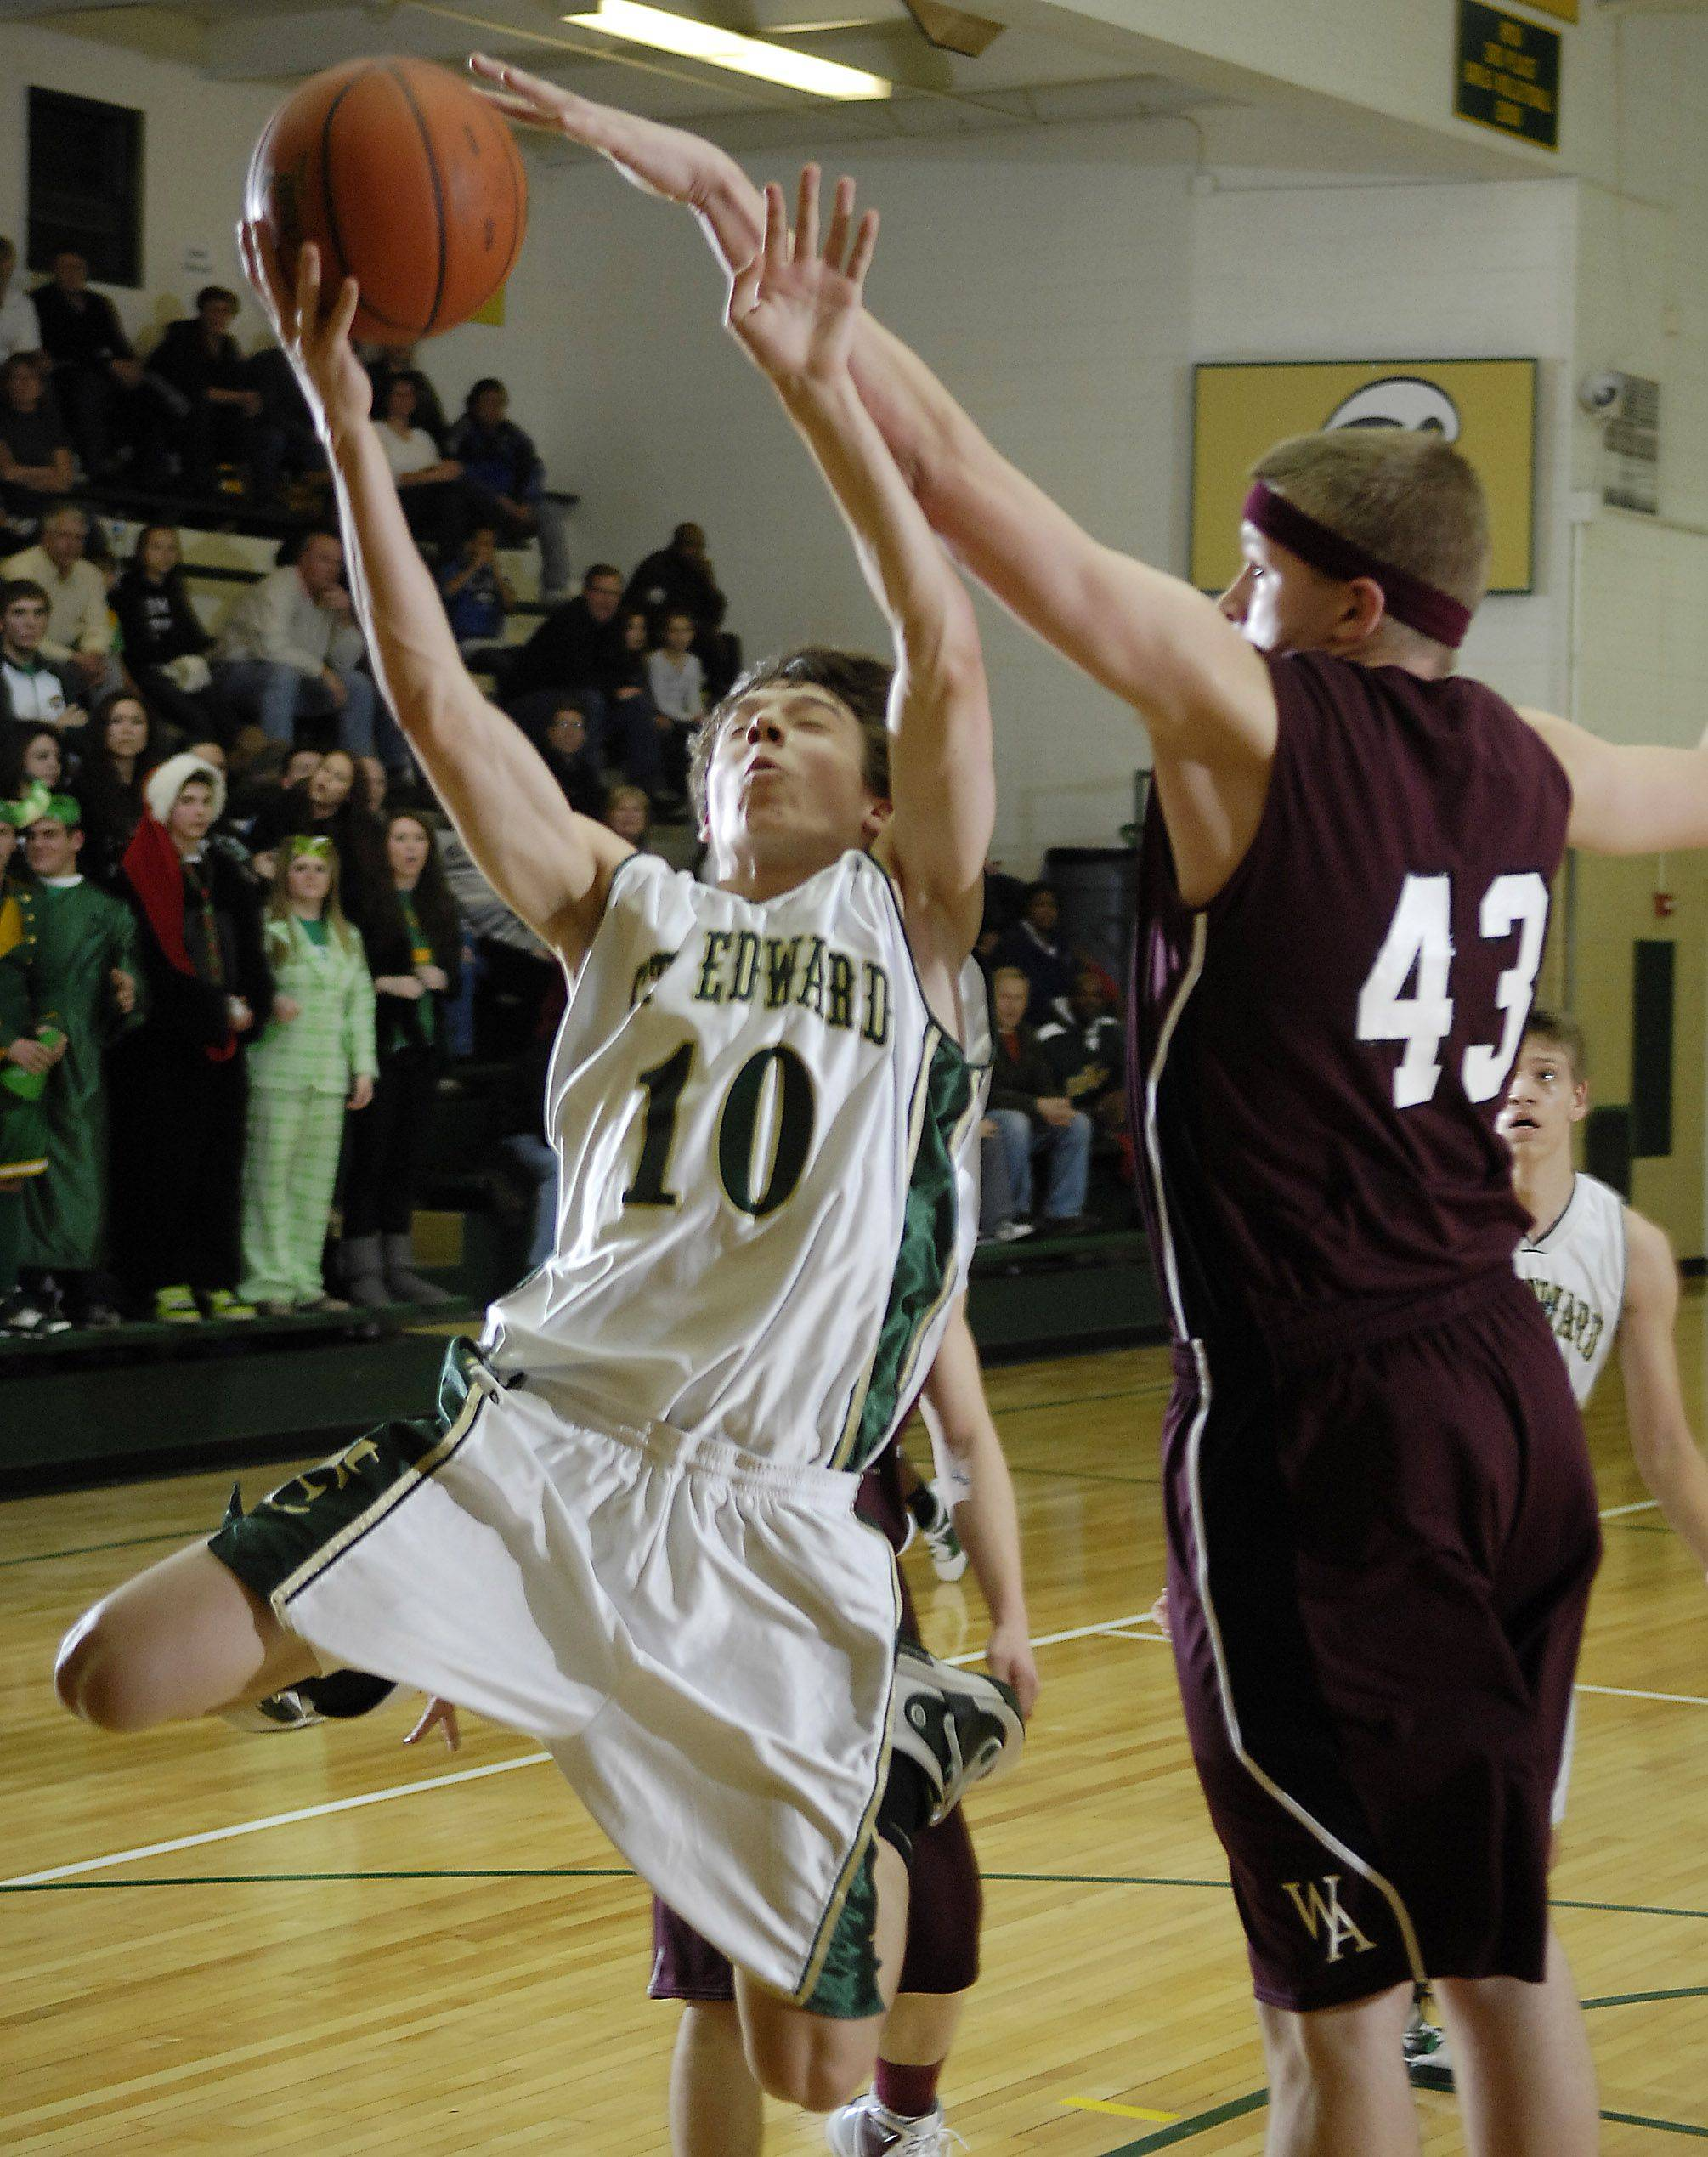 St. Edward's Zach Brewster has his shot blocked by Wheaton Academy's Luke Johnson.